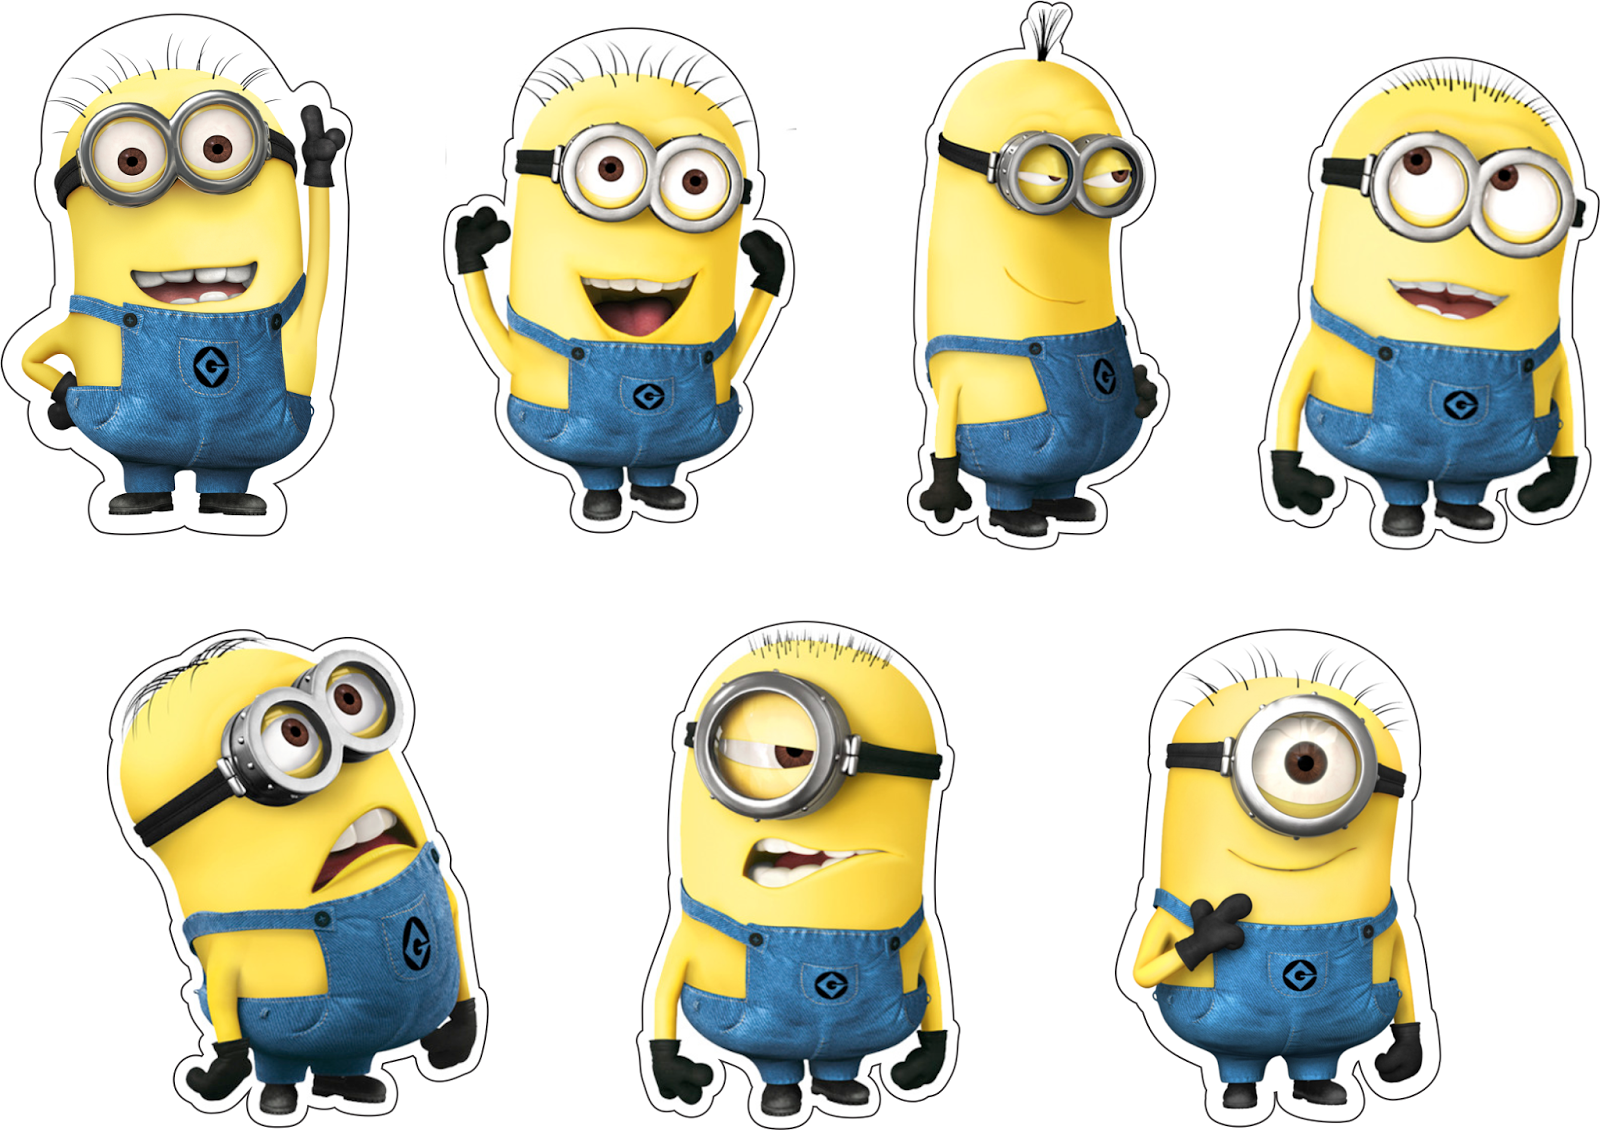 Free Printable Cake Toppers For A Minions Party Oh My Fiesta In English